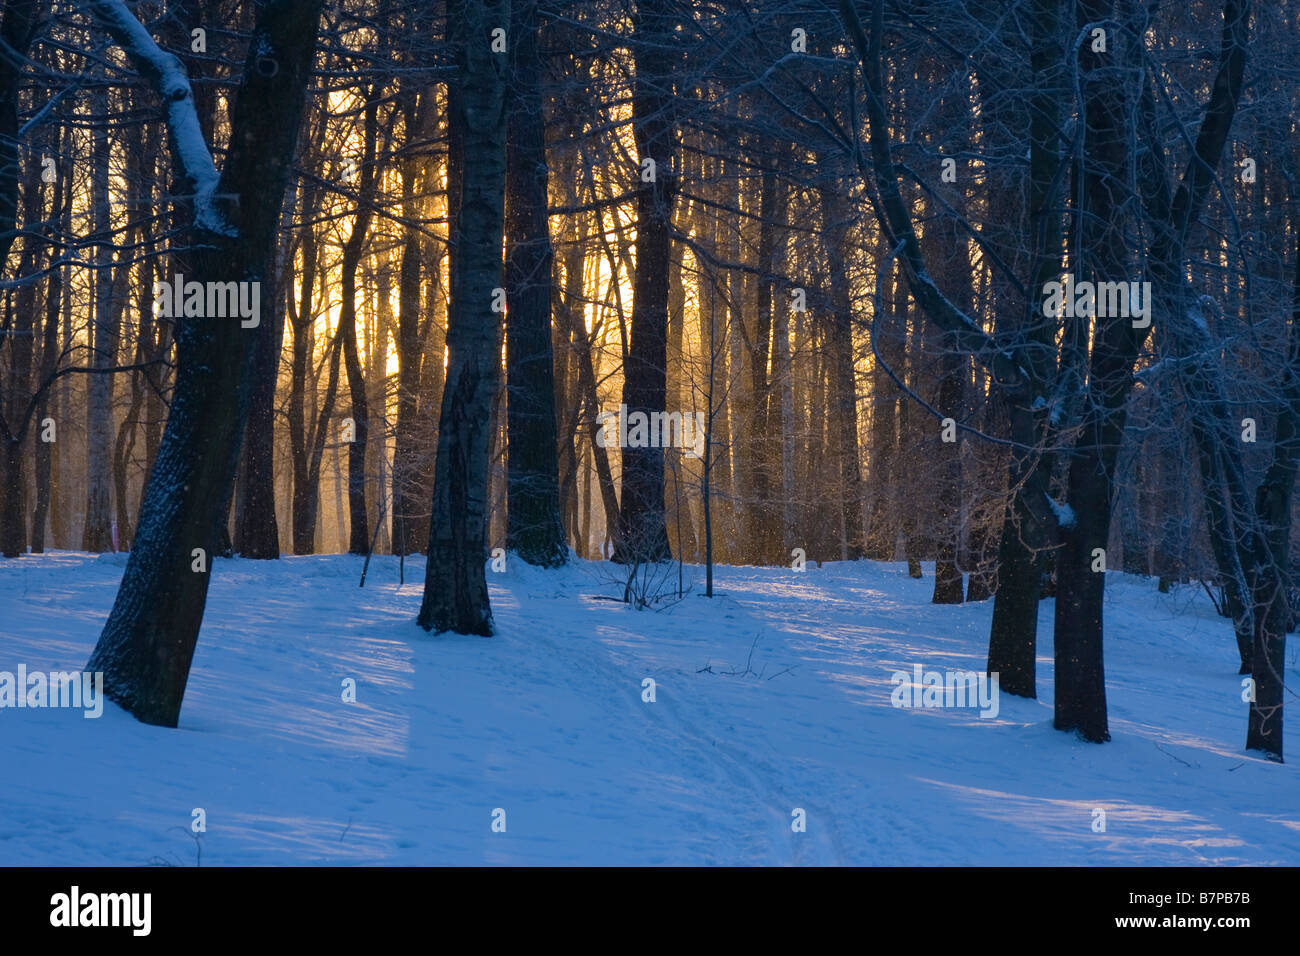 Winter sunset in snow covered wood - Stock Image